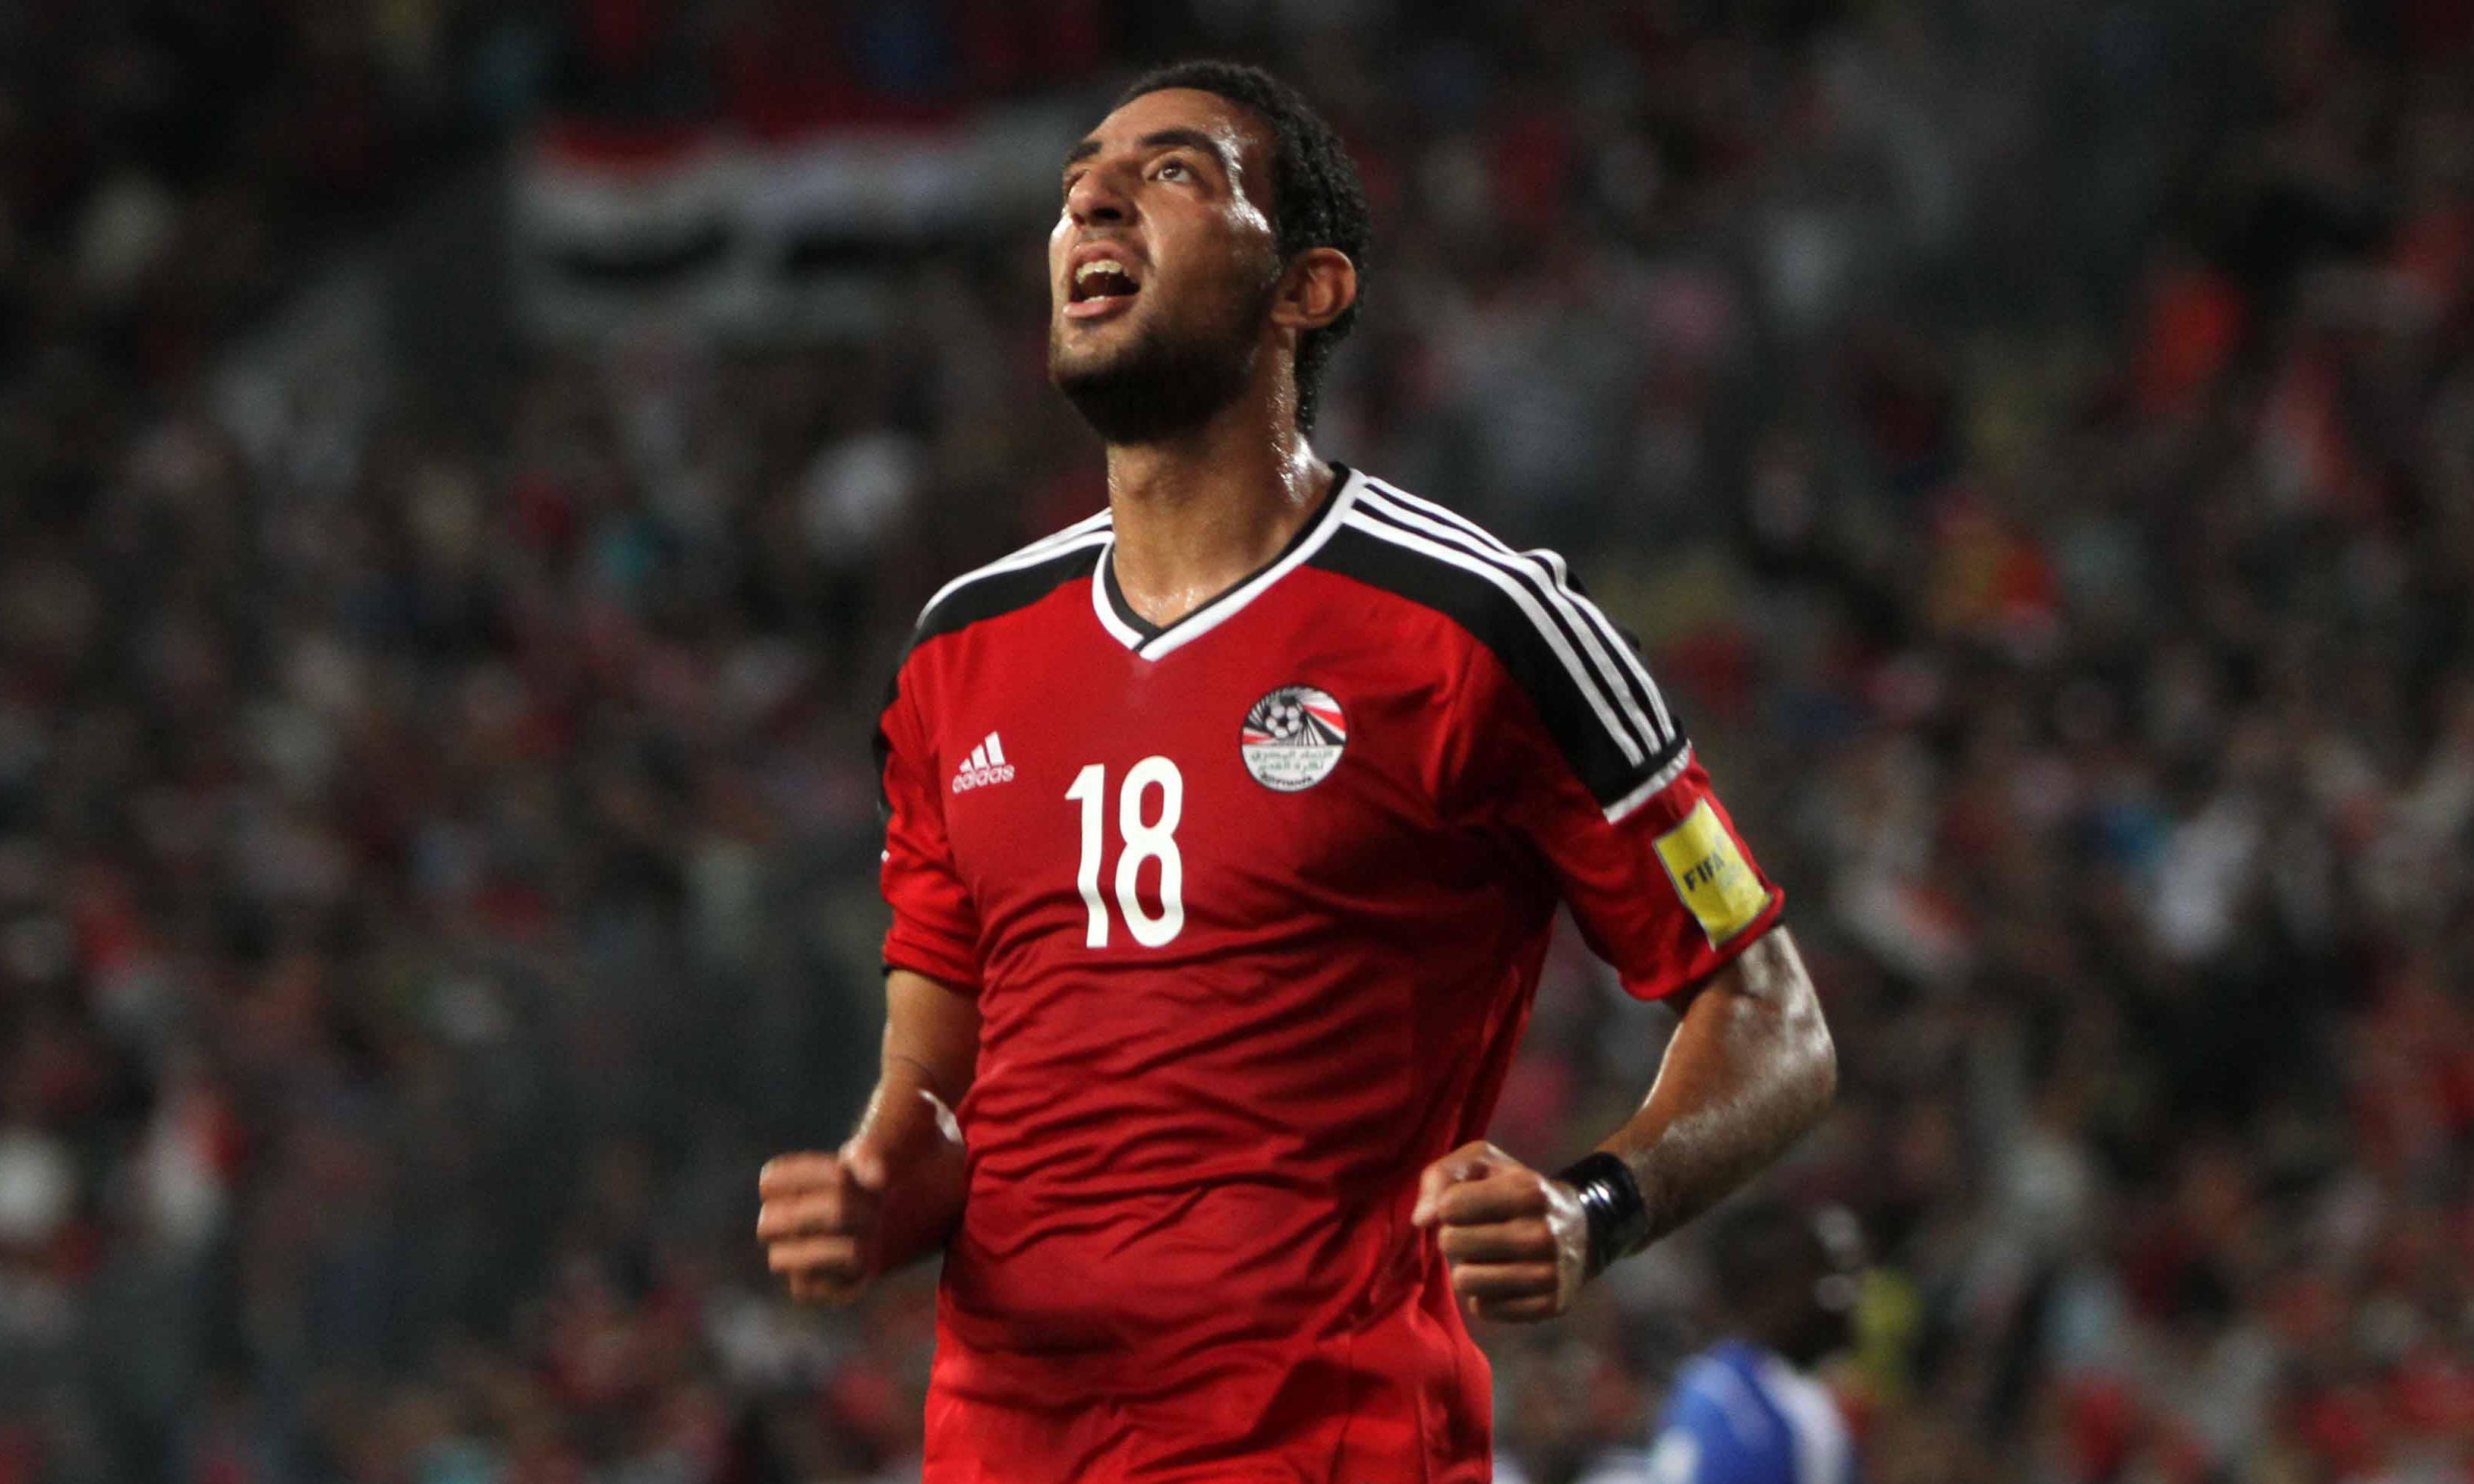 Ahmed 'Kouka' Hassan: 'Salah is a brother. He is a role model for me and all Egyptians'